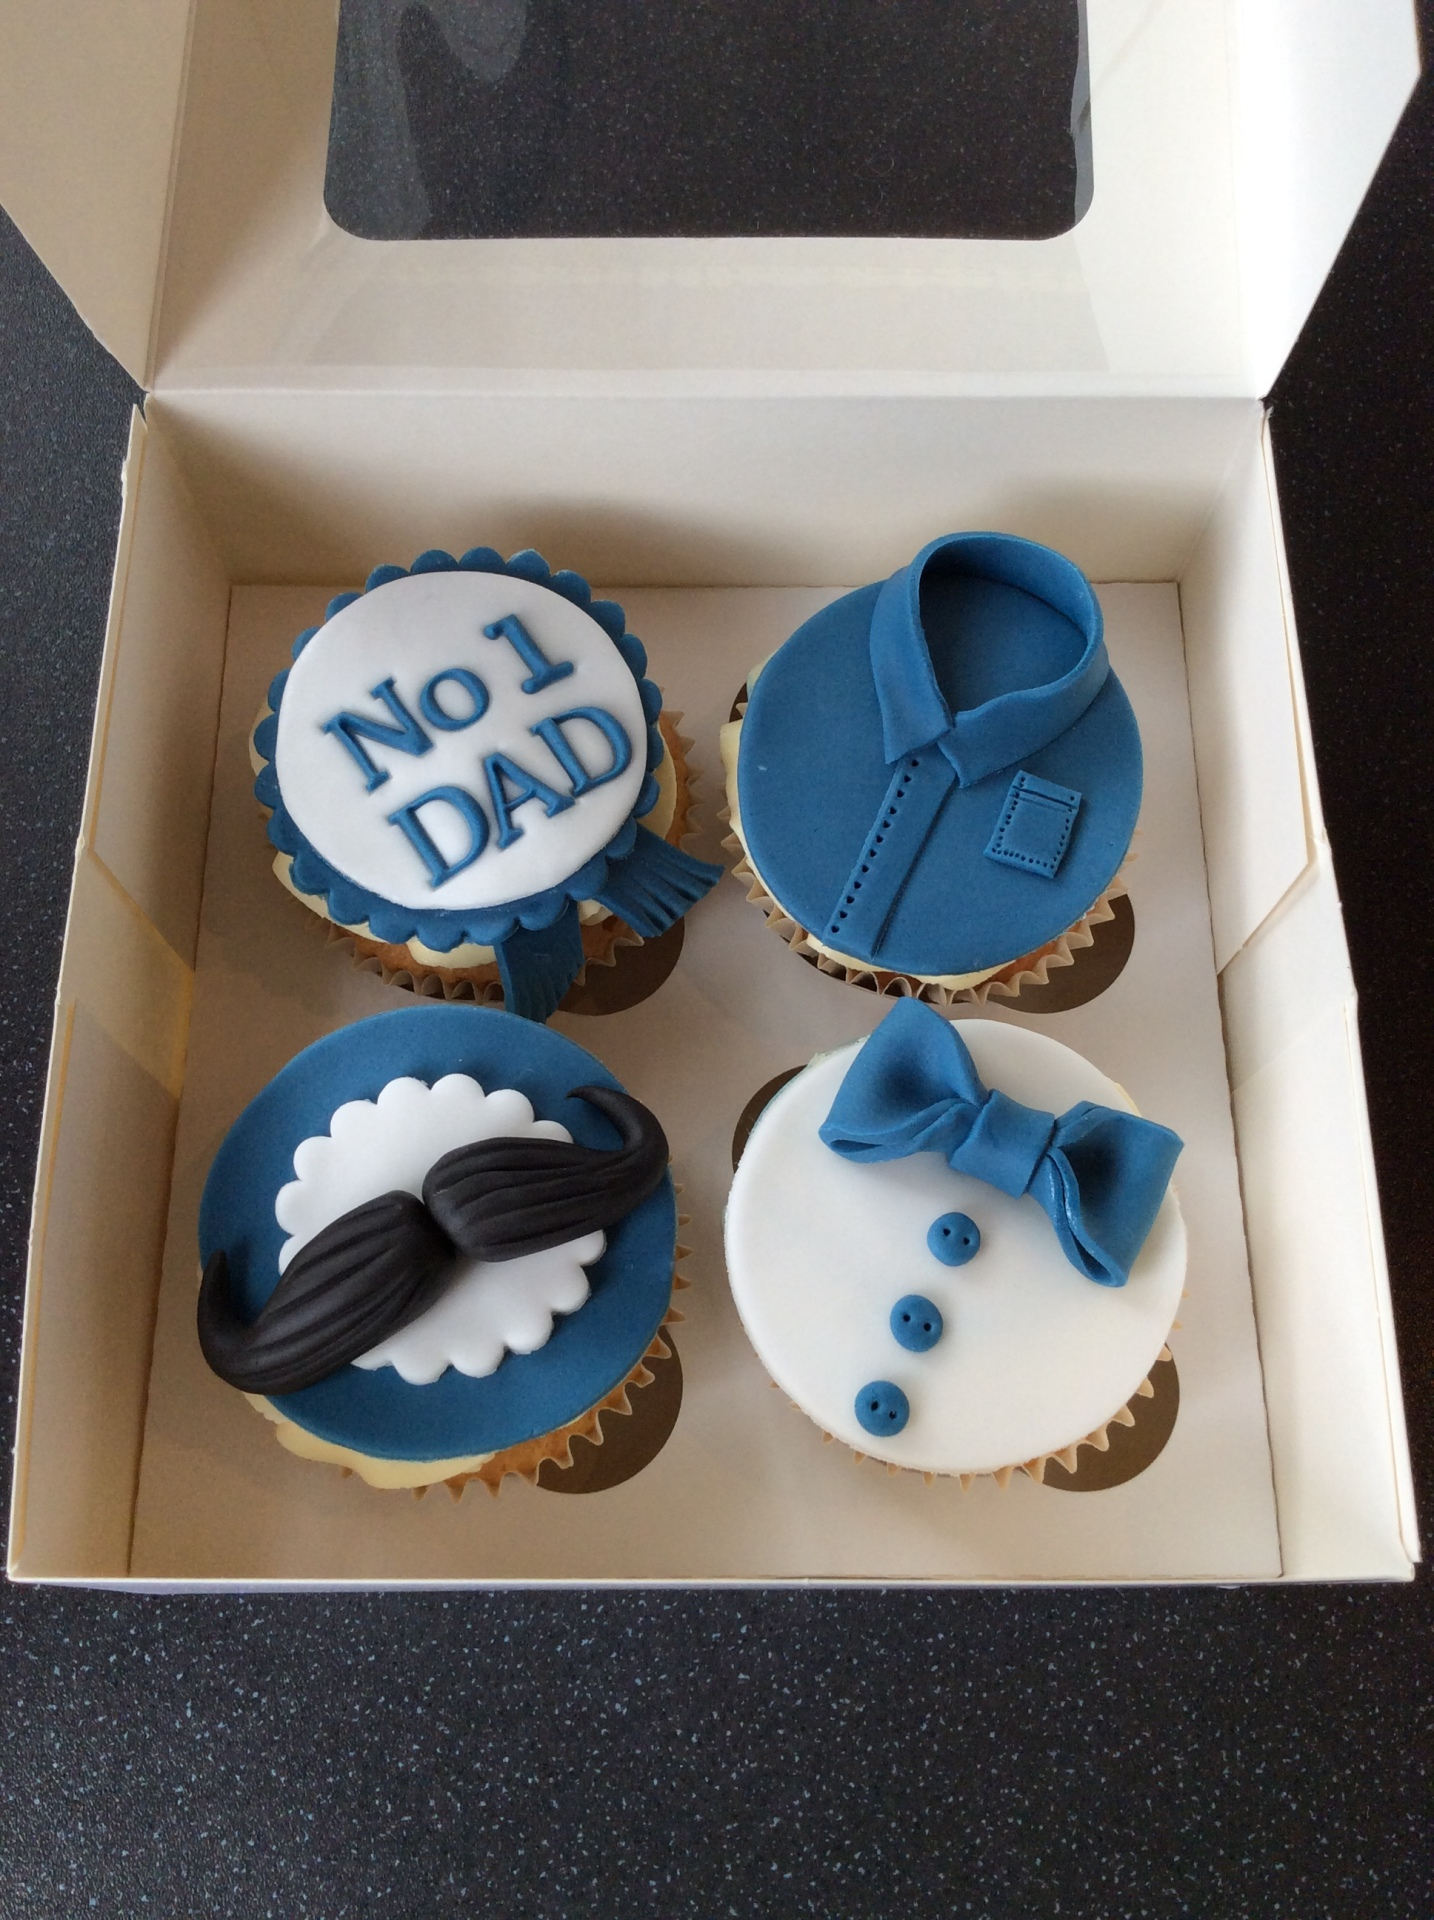 Father's Day - £1.75 each